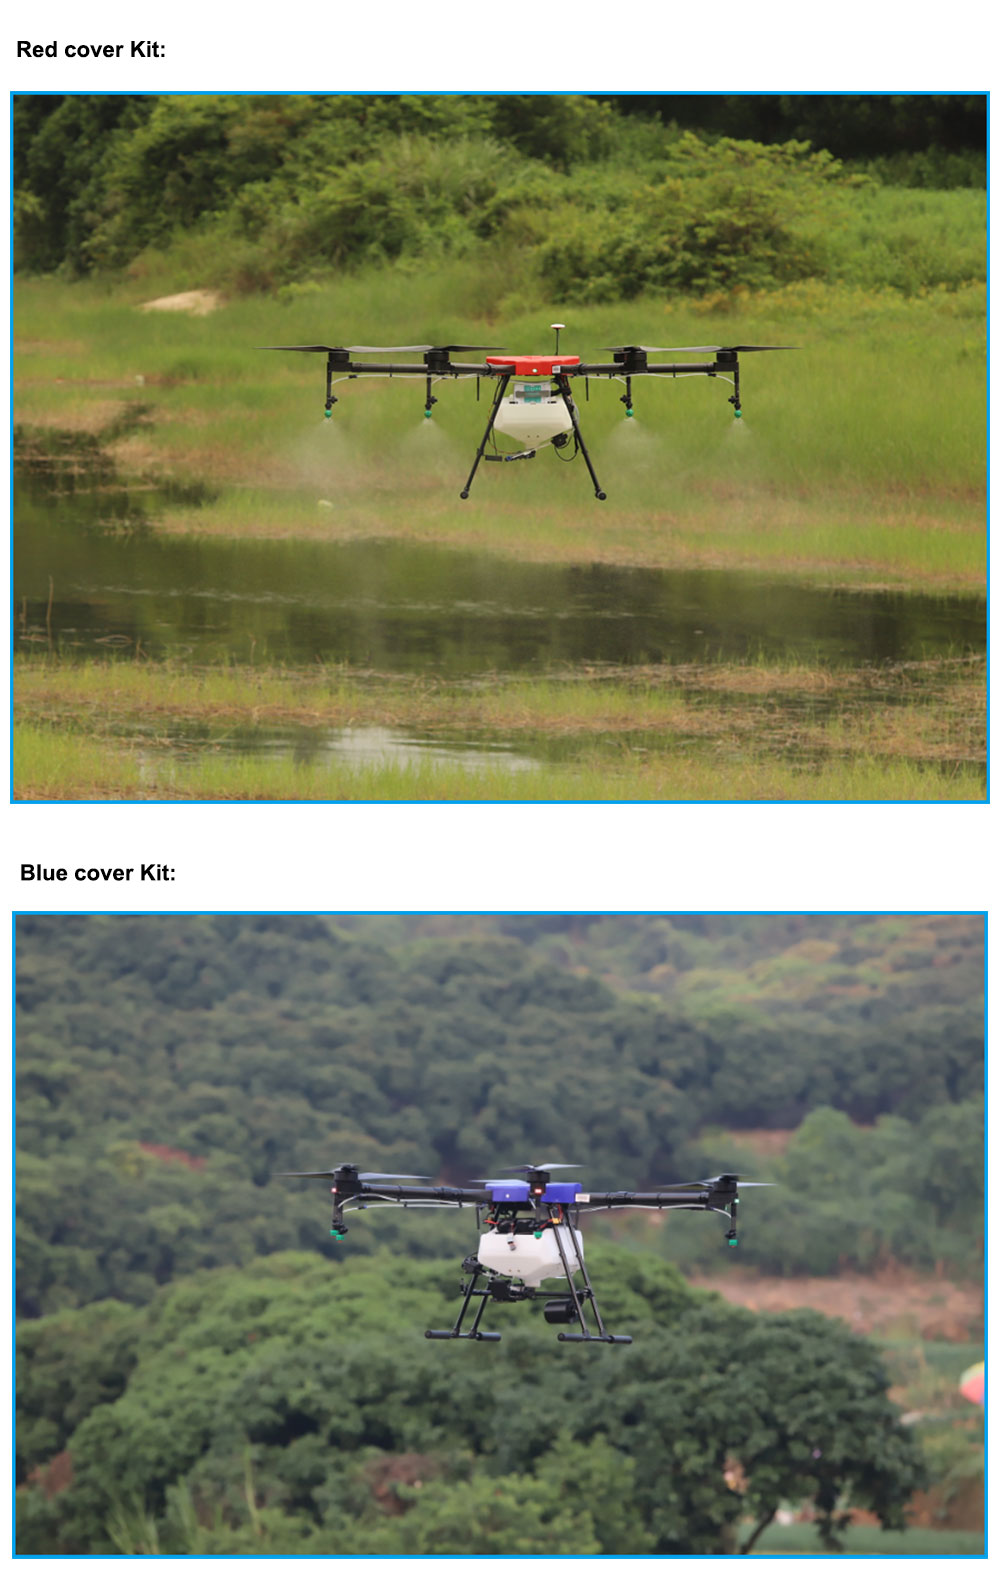 Security and police drones